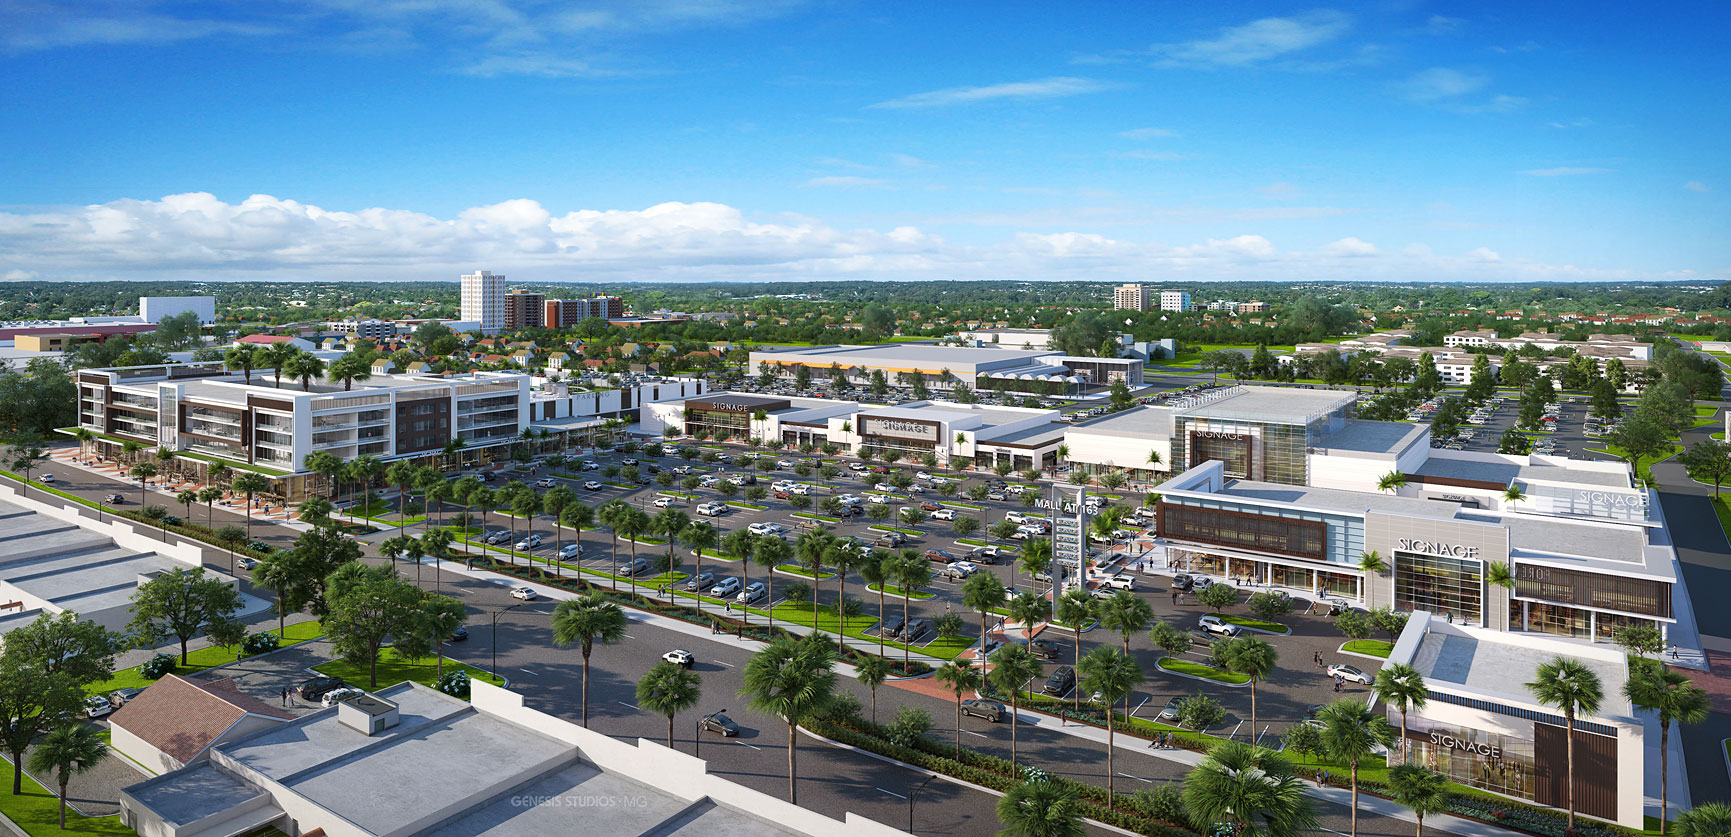 818143 Digital Photorealistic Architectural Renderings of North Miami Mall from an Aerial View for CallisonRTKL